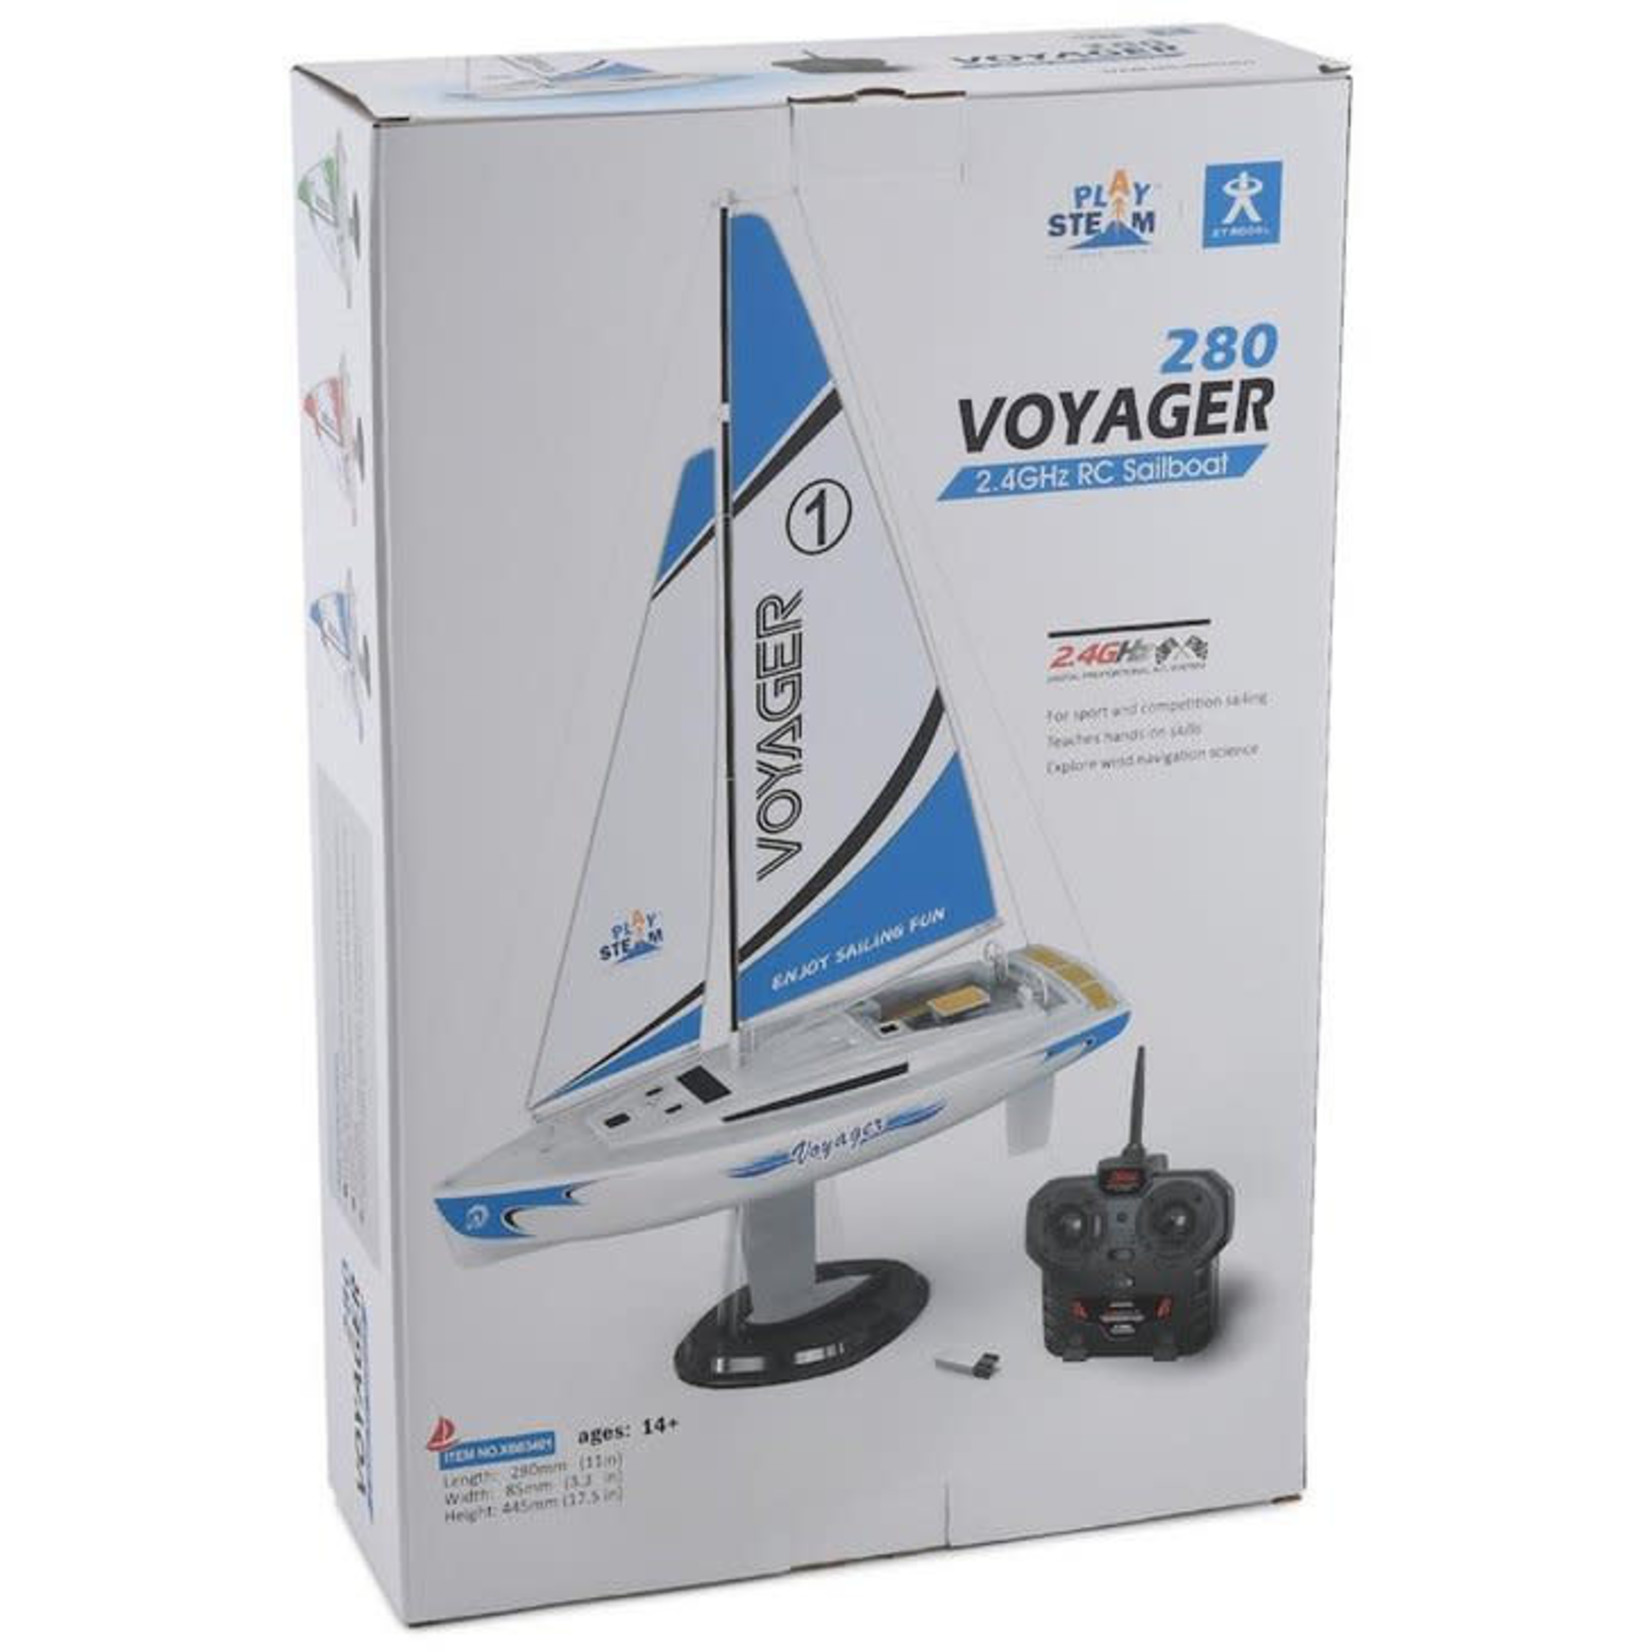 PLAY STEAM VOYAGER SAIL BOAT BLUE